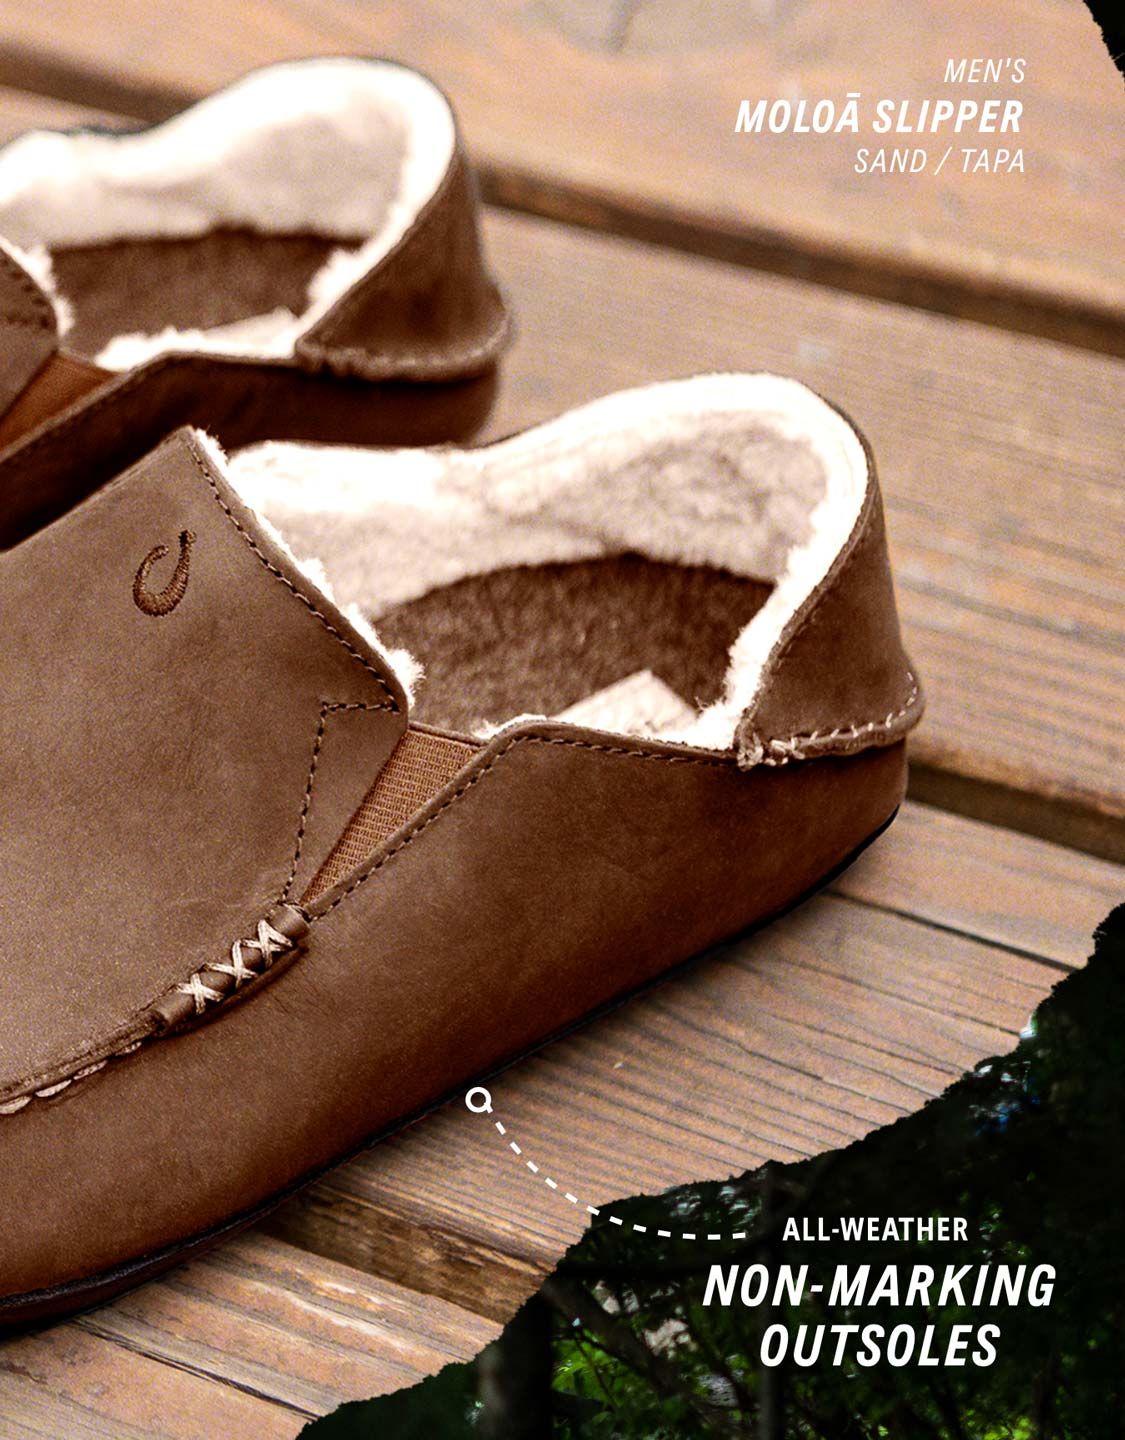 OluKai Mens Slipper Gallery Image 10